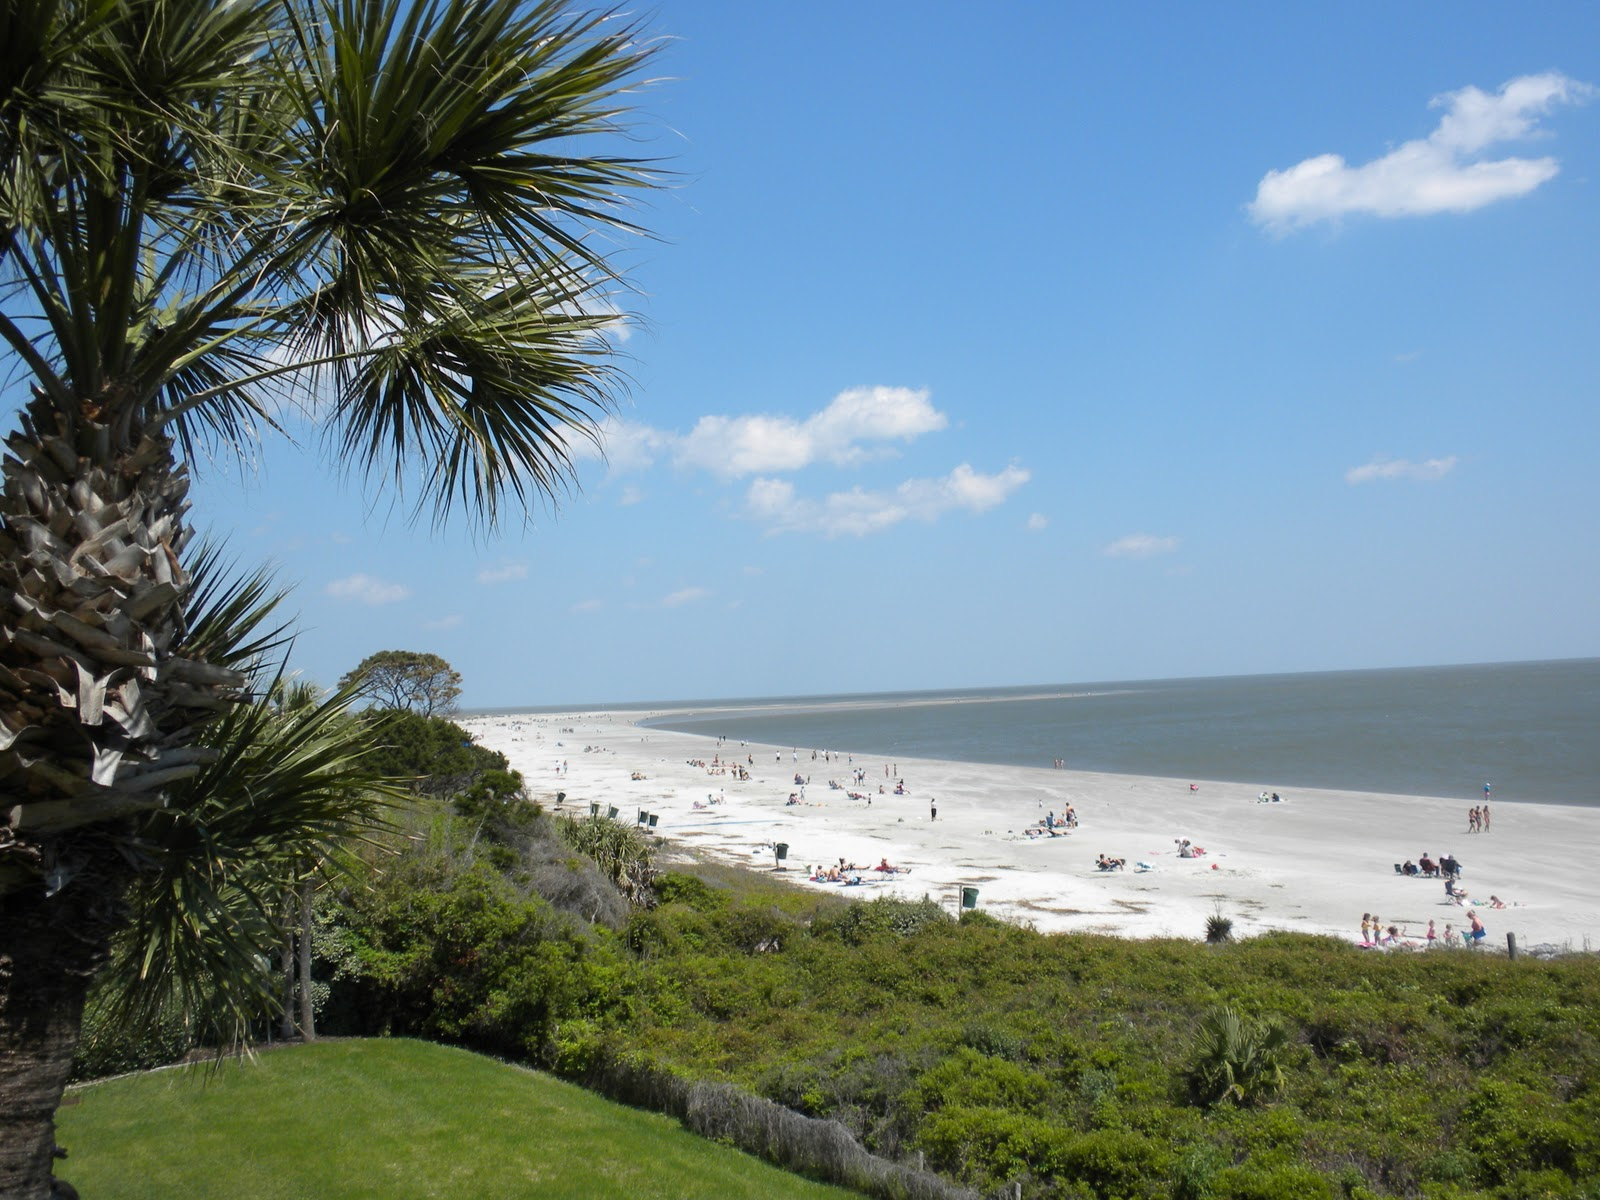 Saint Simons Island